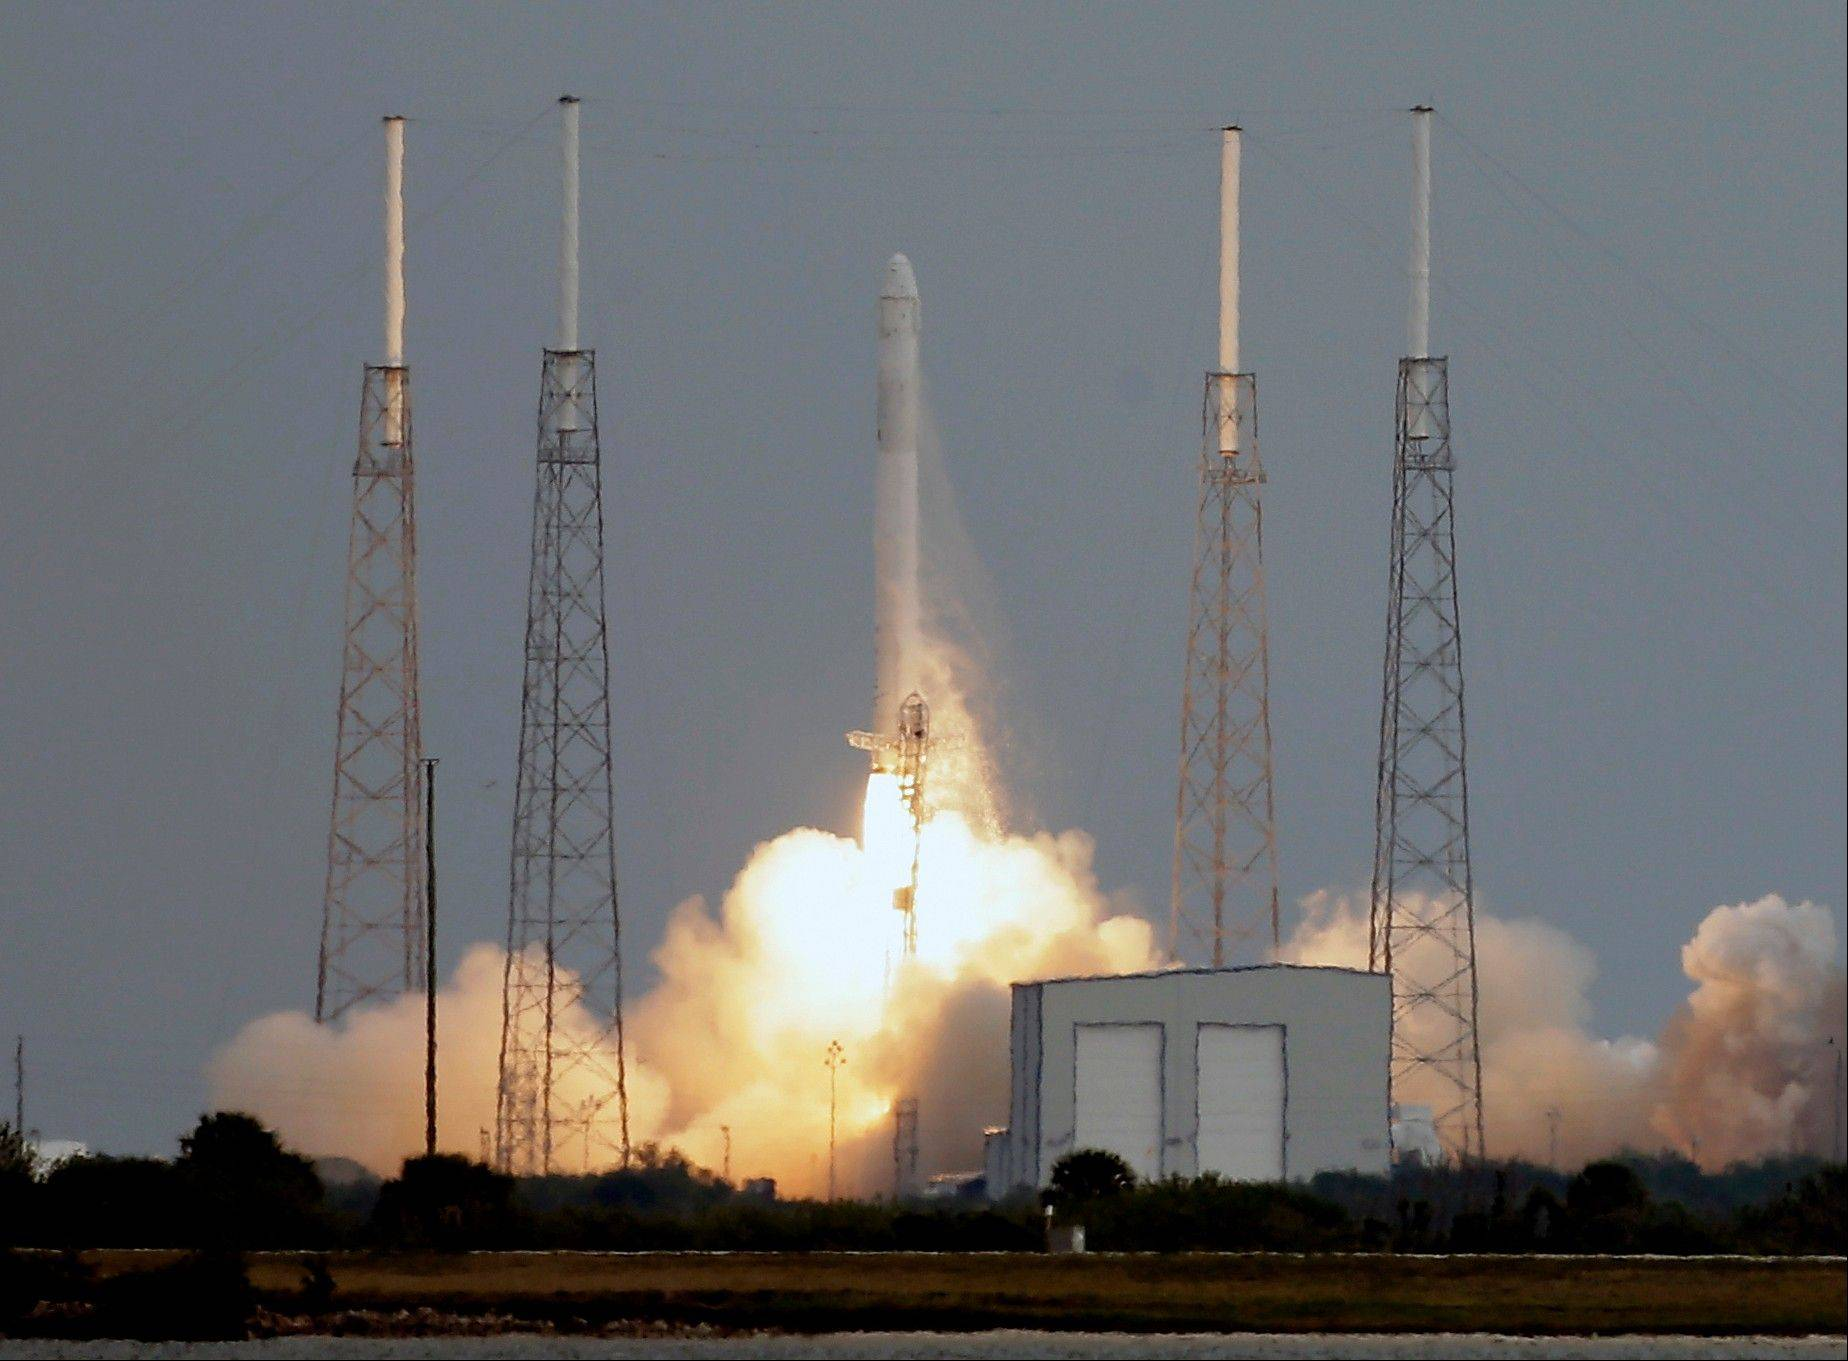 The Falcon 9 SpaceX rocket lifts off Friday from launch complex 40 at the Cape Canaveral Air Force Station in Cape Canaveral, Fla.